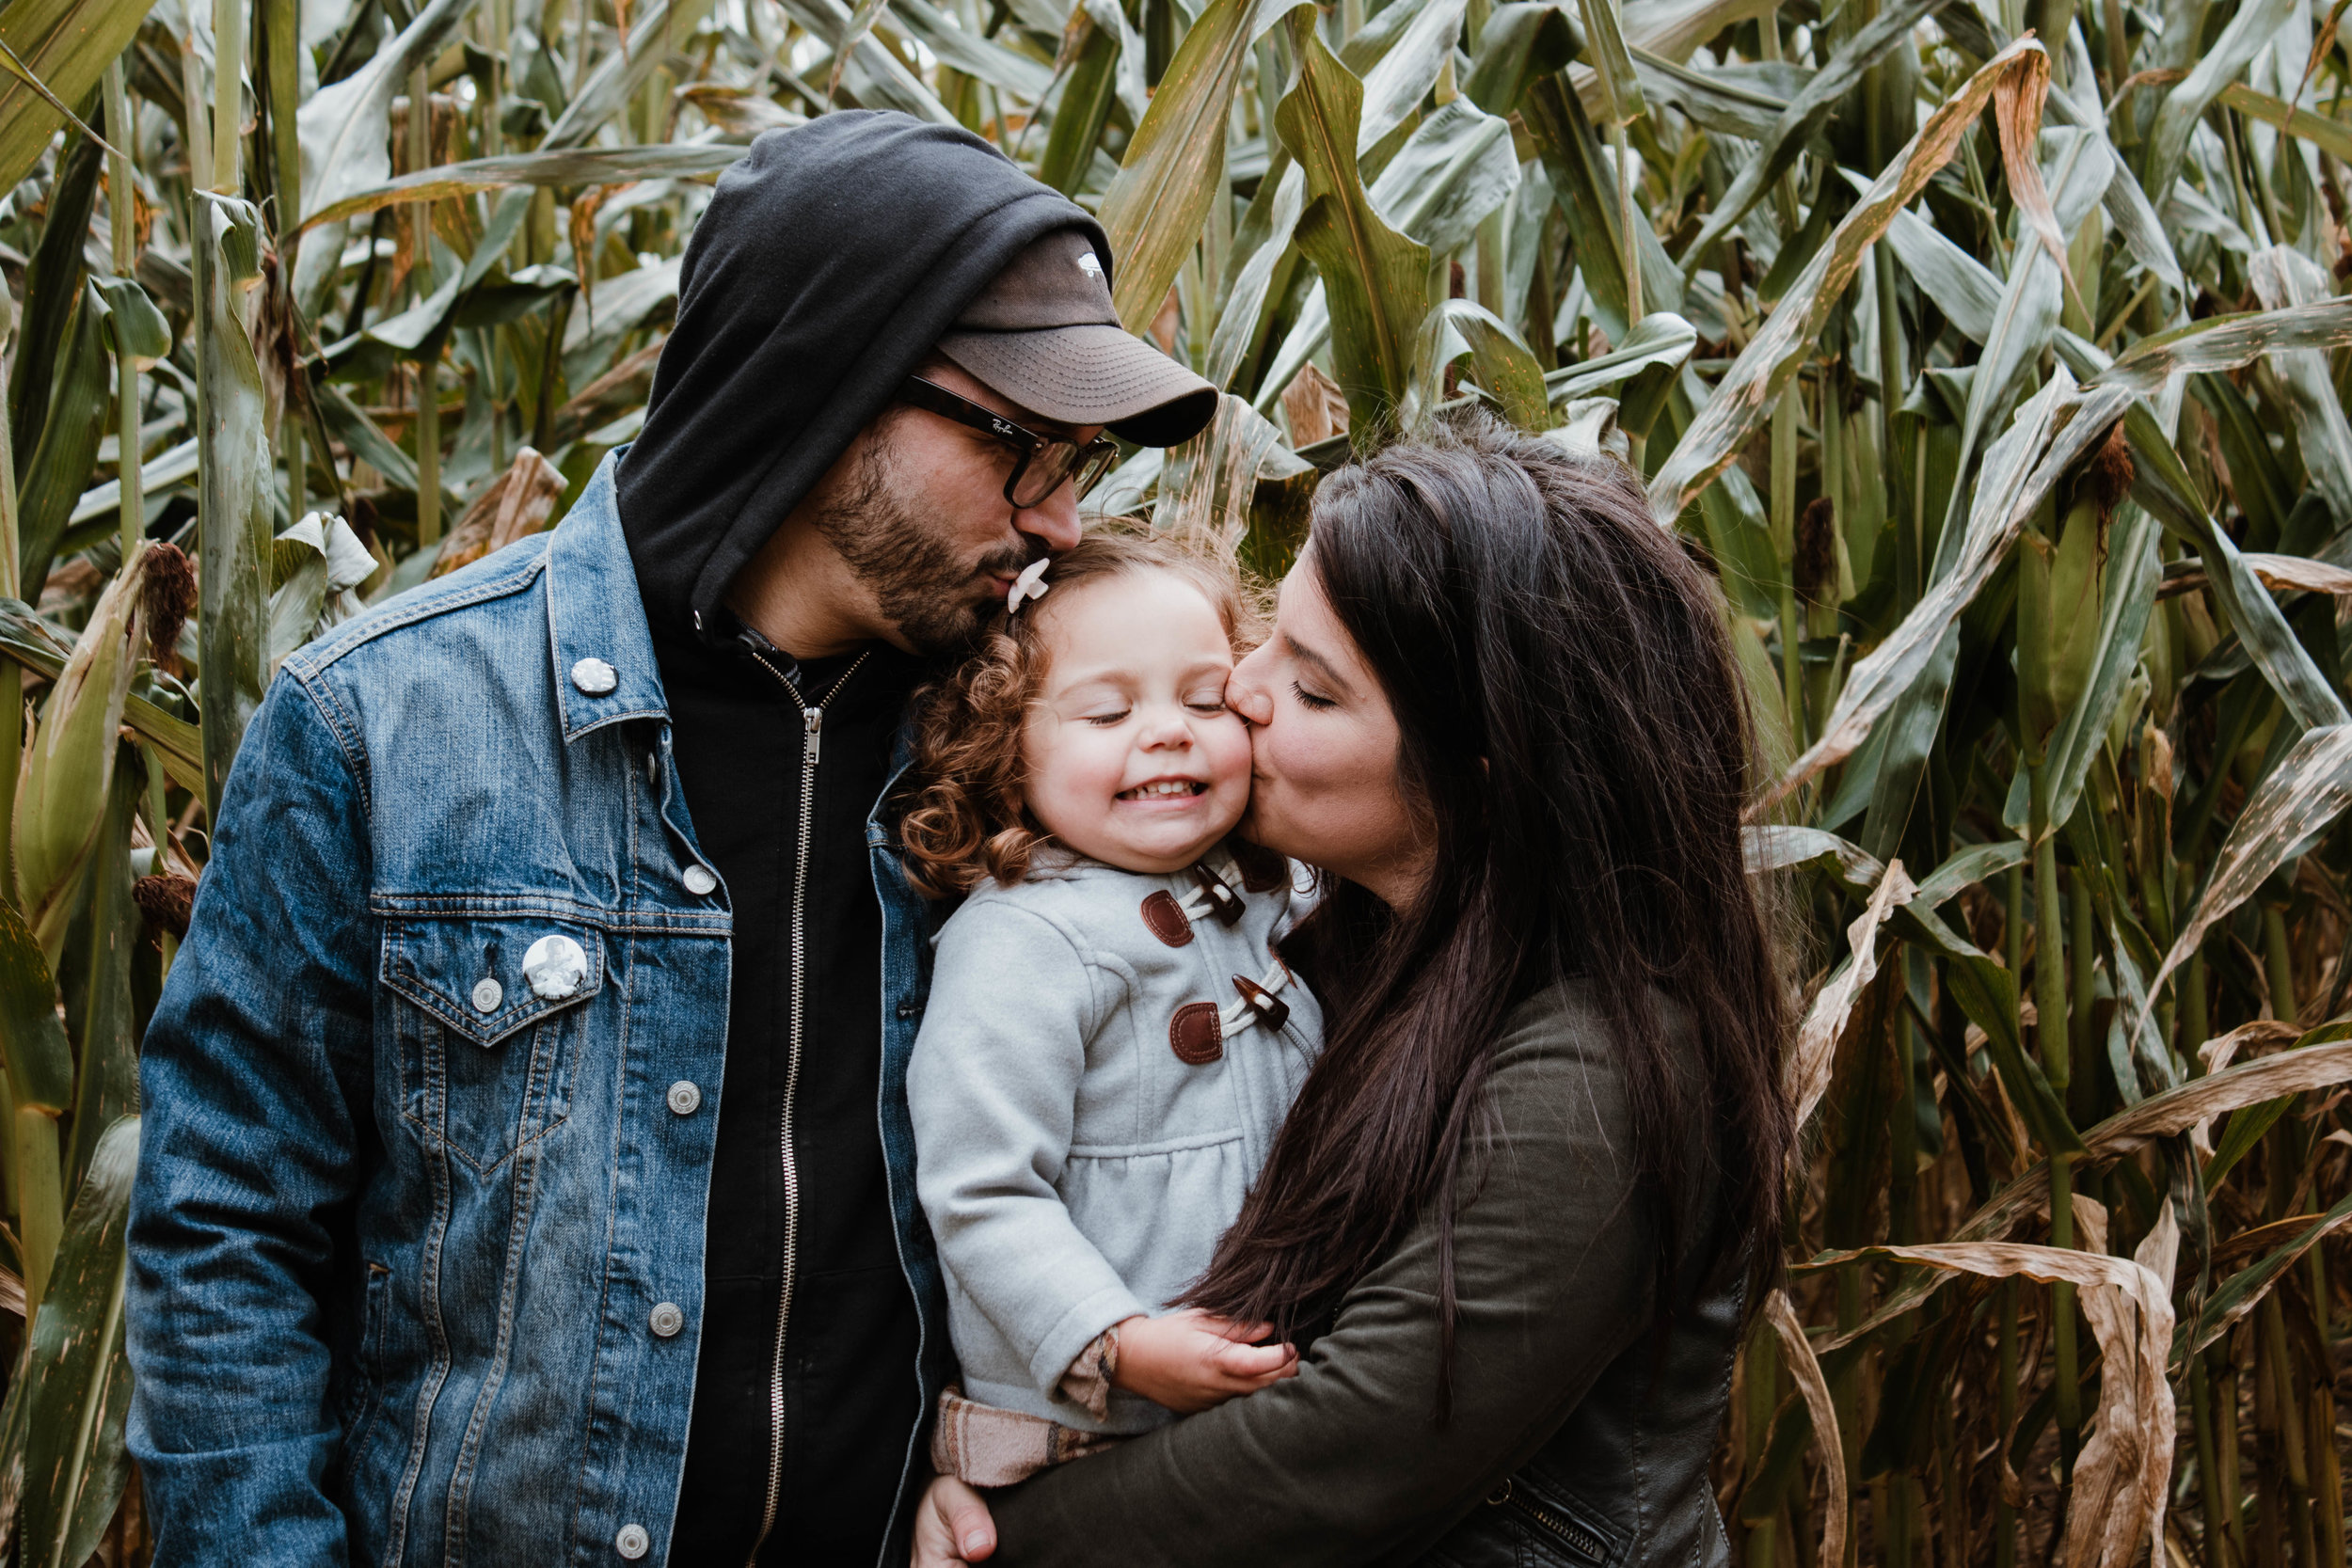 FAMILIES - Family sessions start at $250 per one hour session.Rates subject to change based on needs, please email to inquire.